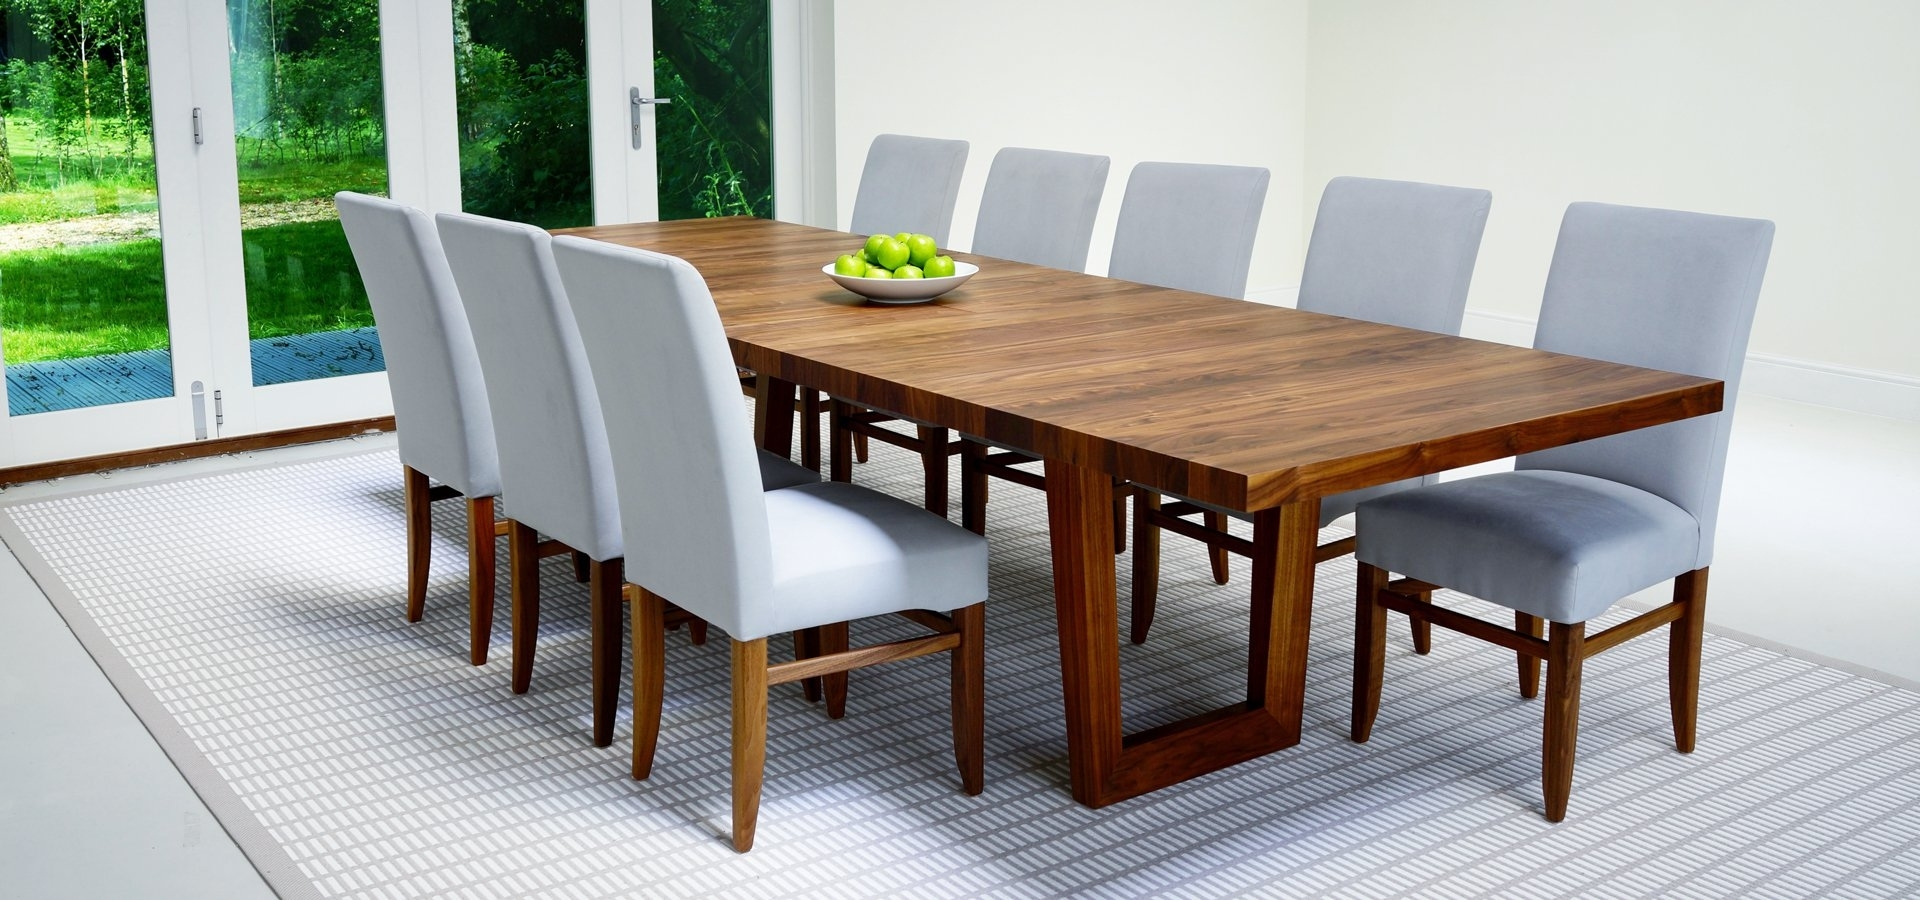 Most Up To Date Oak Dining Suites With Regard To Contemporary Dining Tables & Furnitureberrydesign (View 13 of 25)